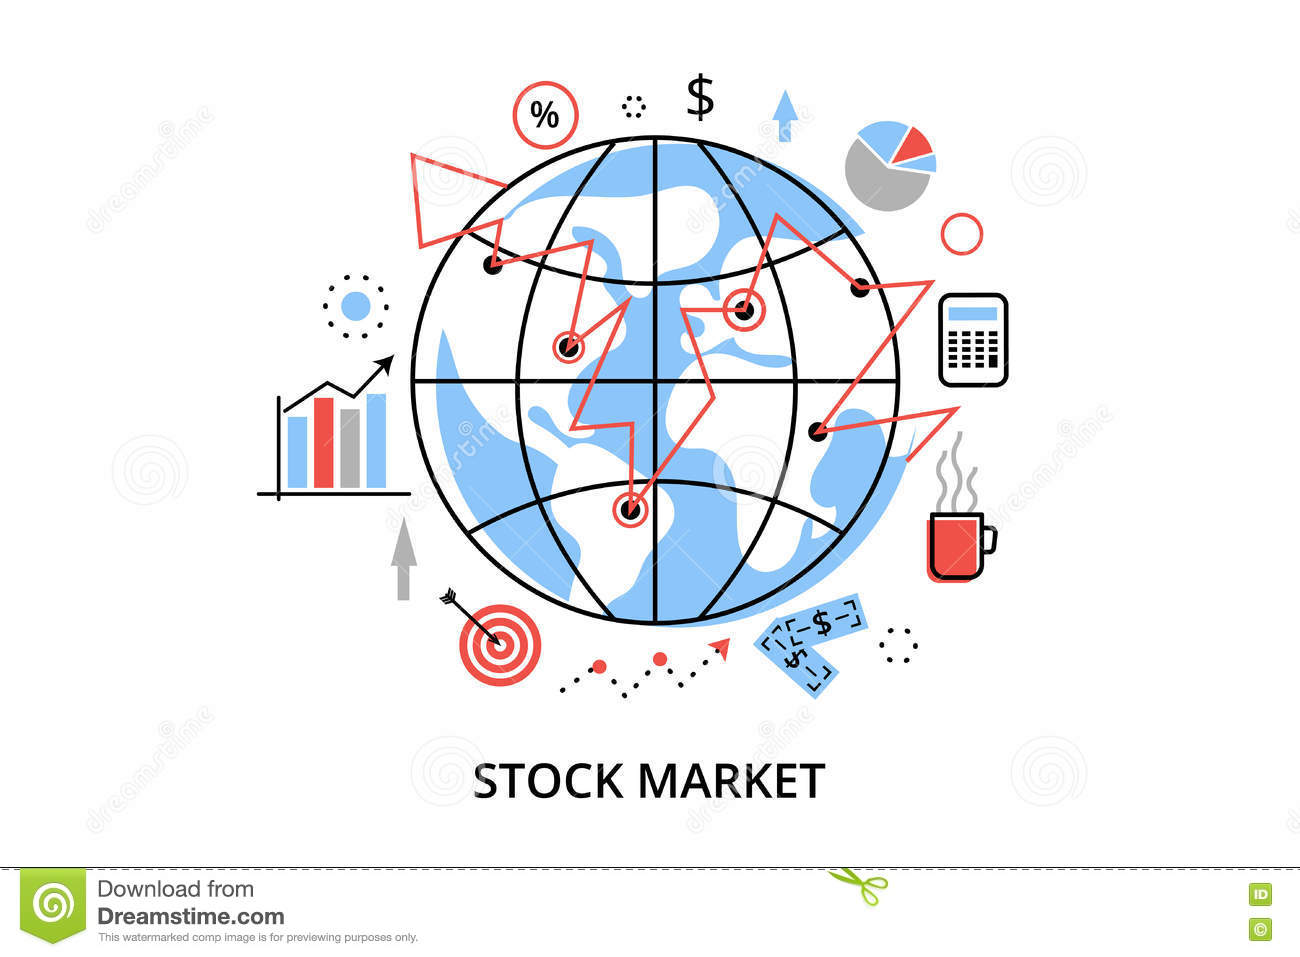 Design a stock trading system